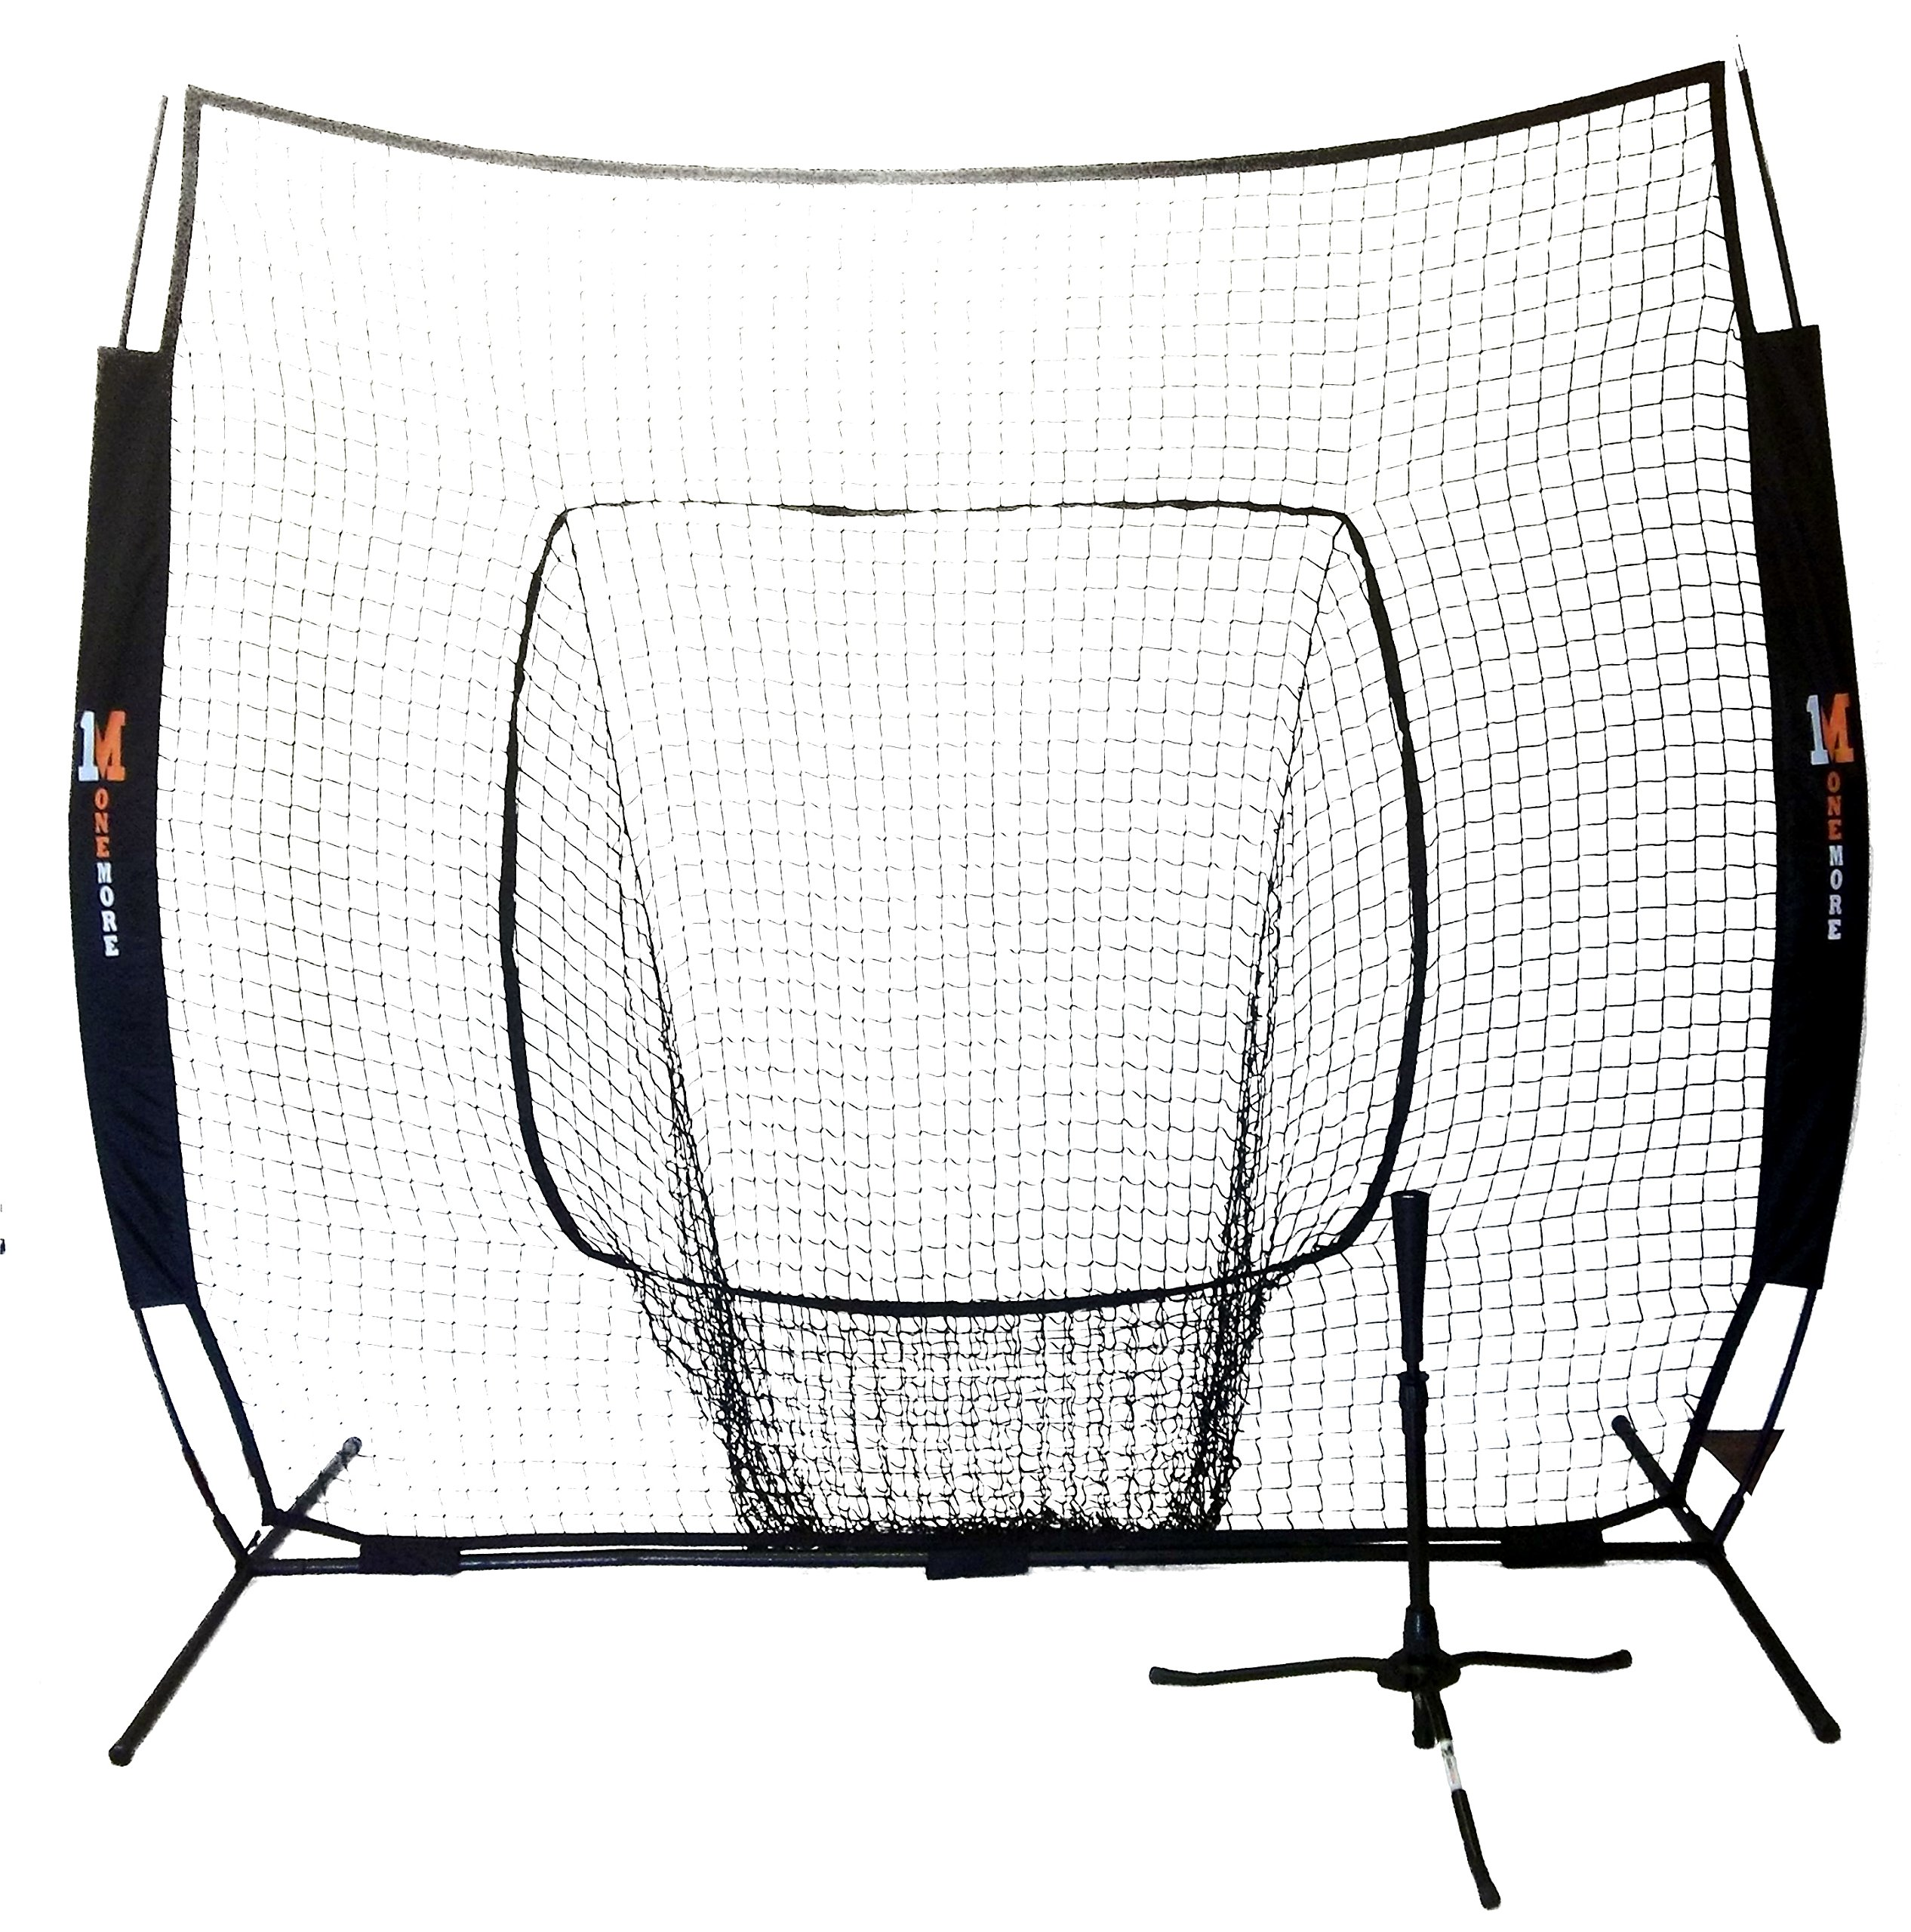 NEW One More 7' x 7' Portable Pop-Up Net & Heavy Duty 6.5lb Tripod Batting Tee Combo Baseball & Softball Hitting Practice by One More